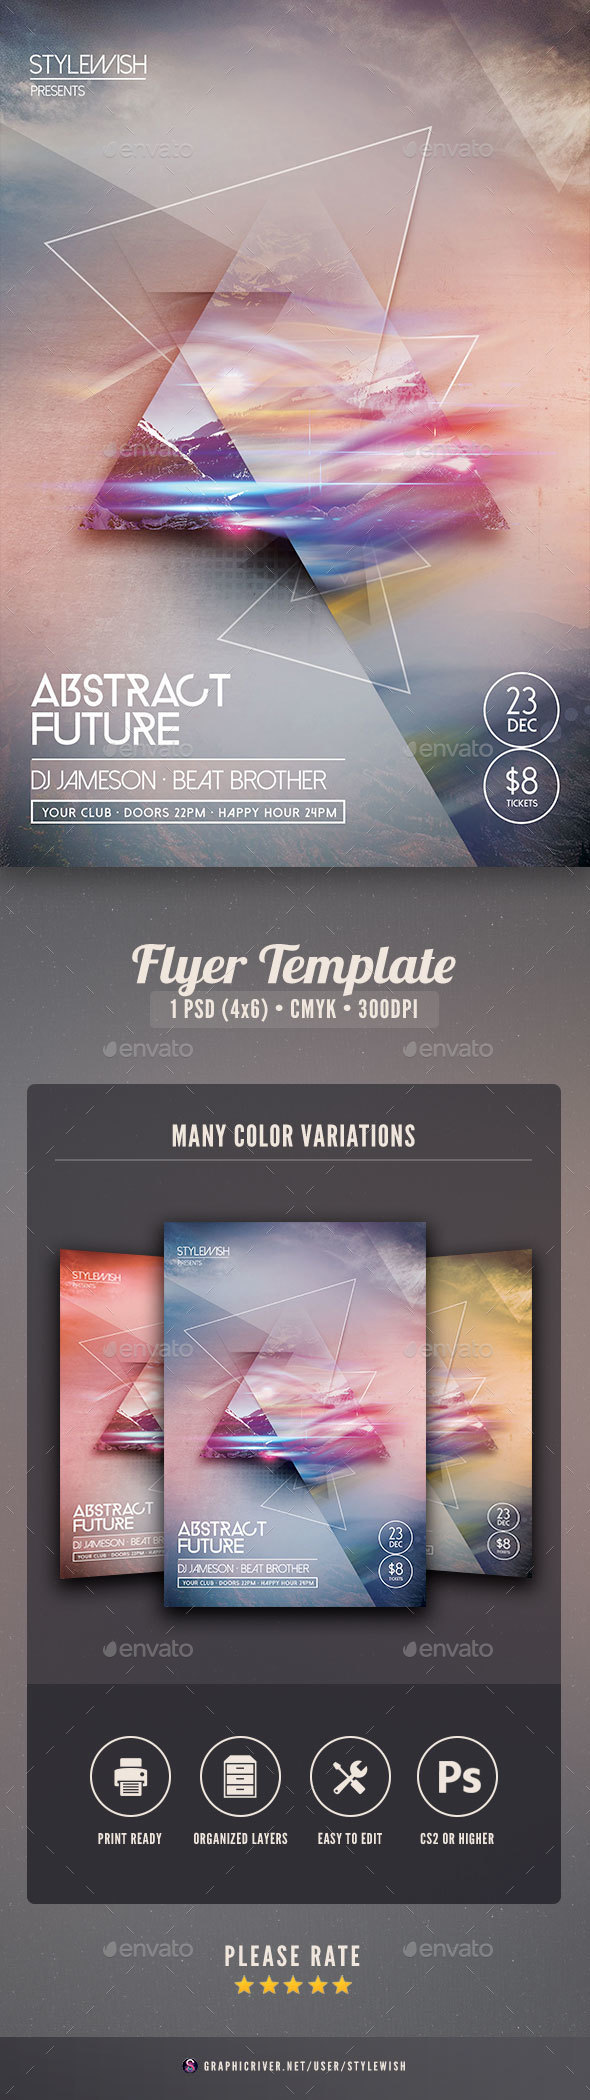 Abstract Future Flyer - Clubs & Parties Events